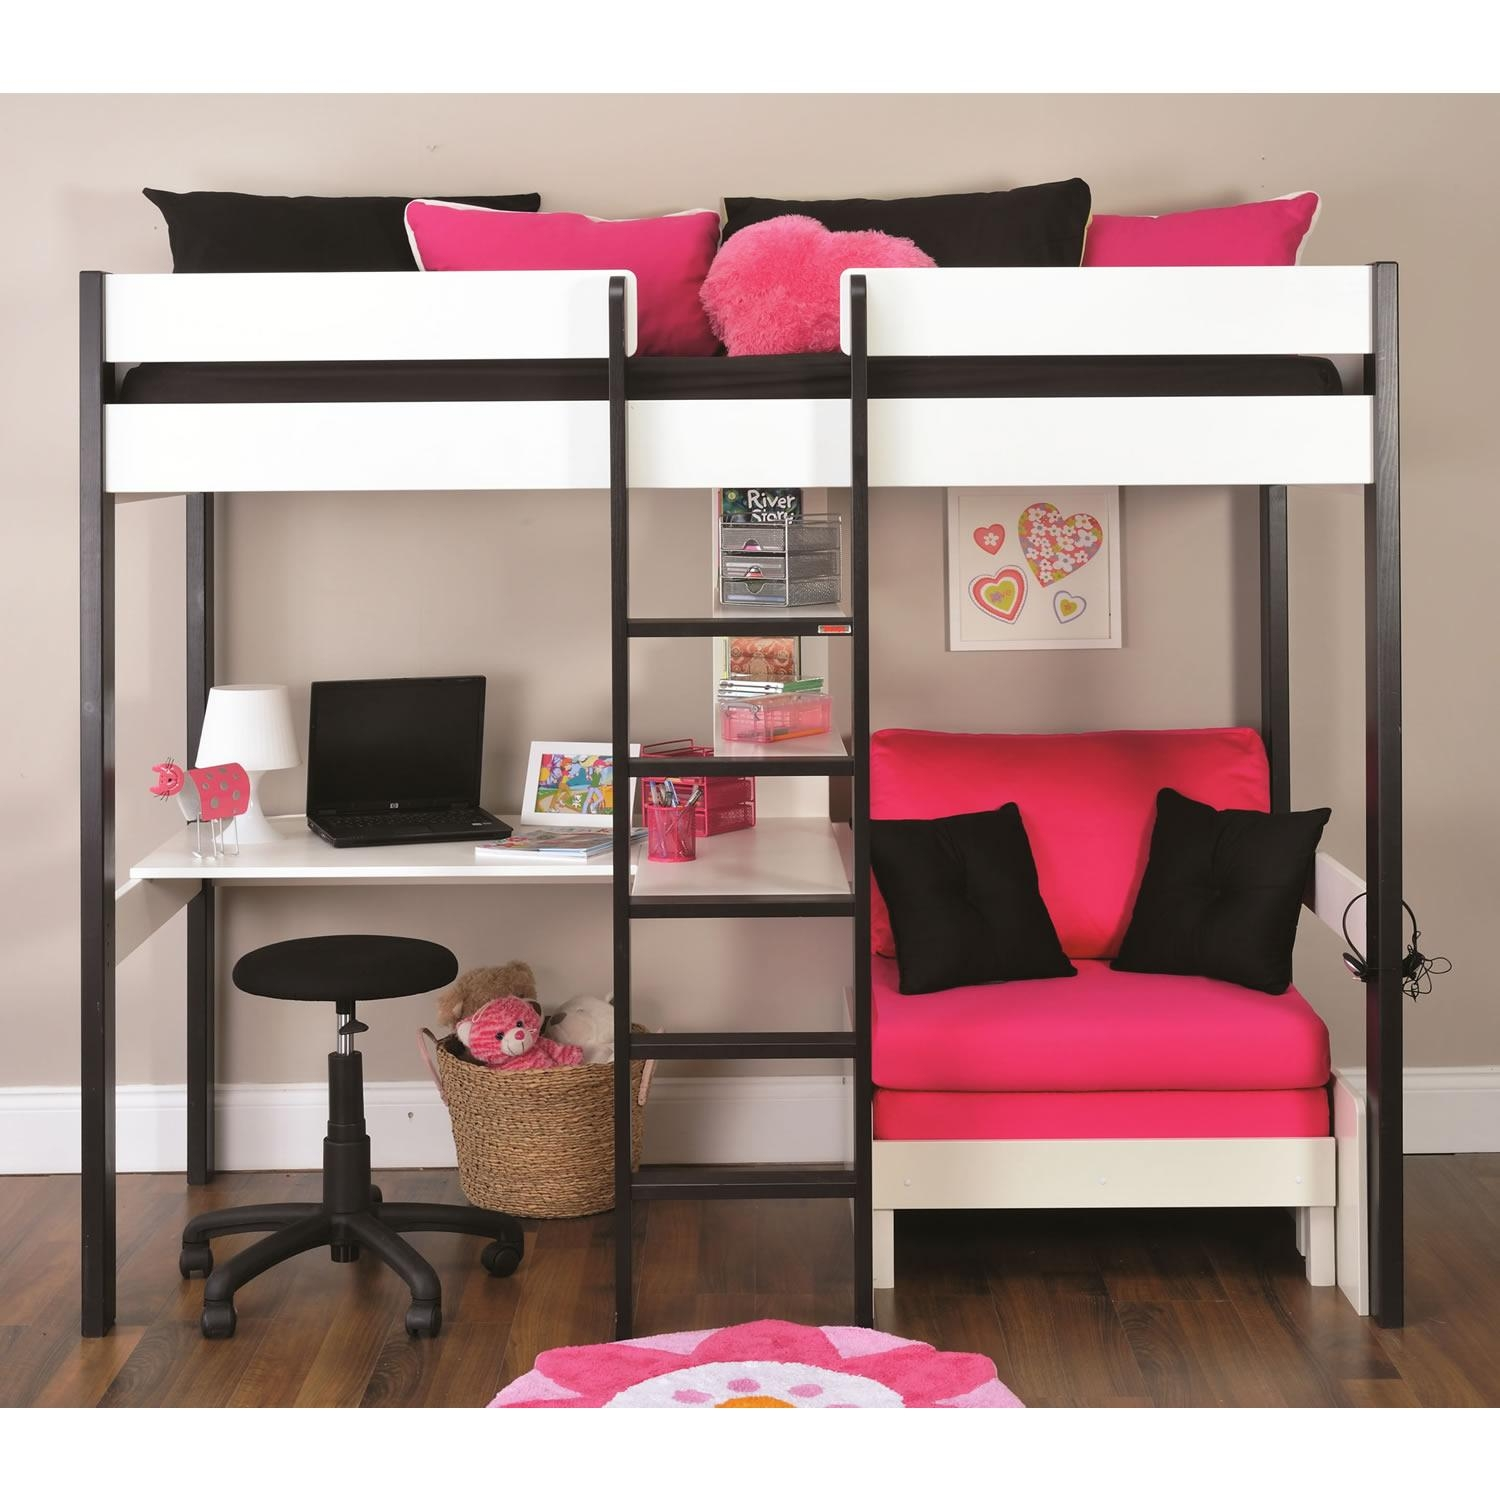 Featured Image of High Sleeper With Desk And Sofa Bed